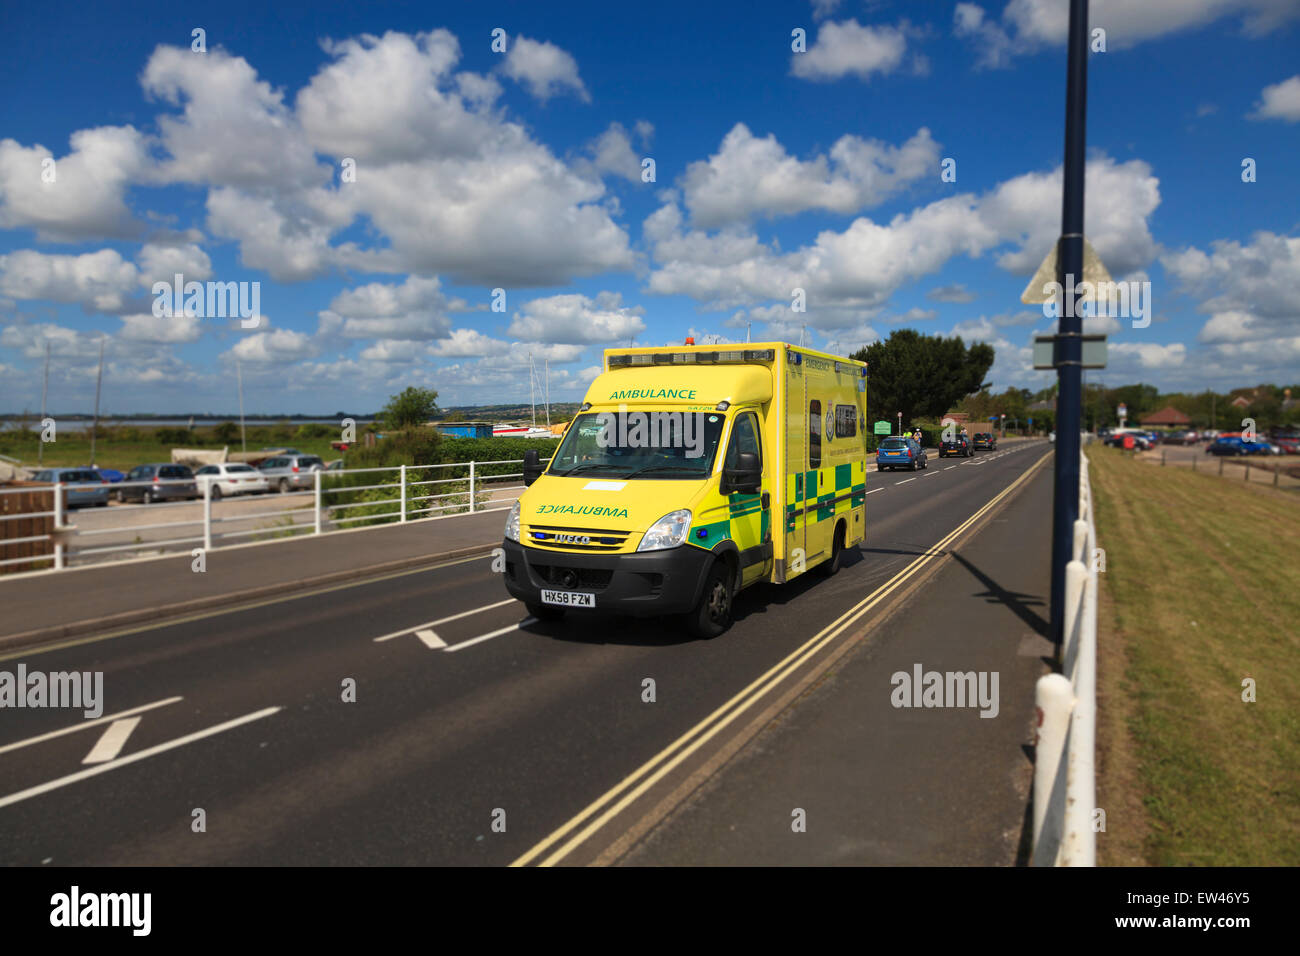 Yellow Emergency Ambulance rushing on single lane road - Stock Image